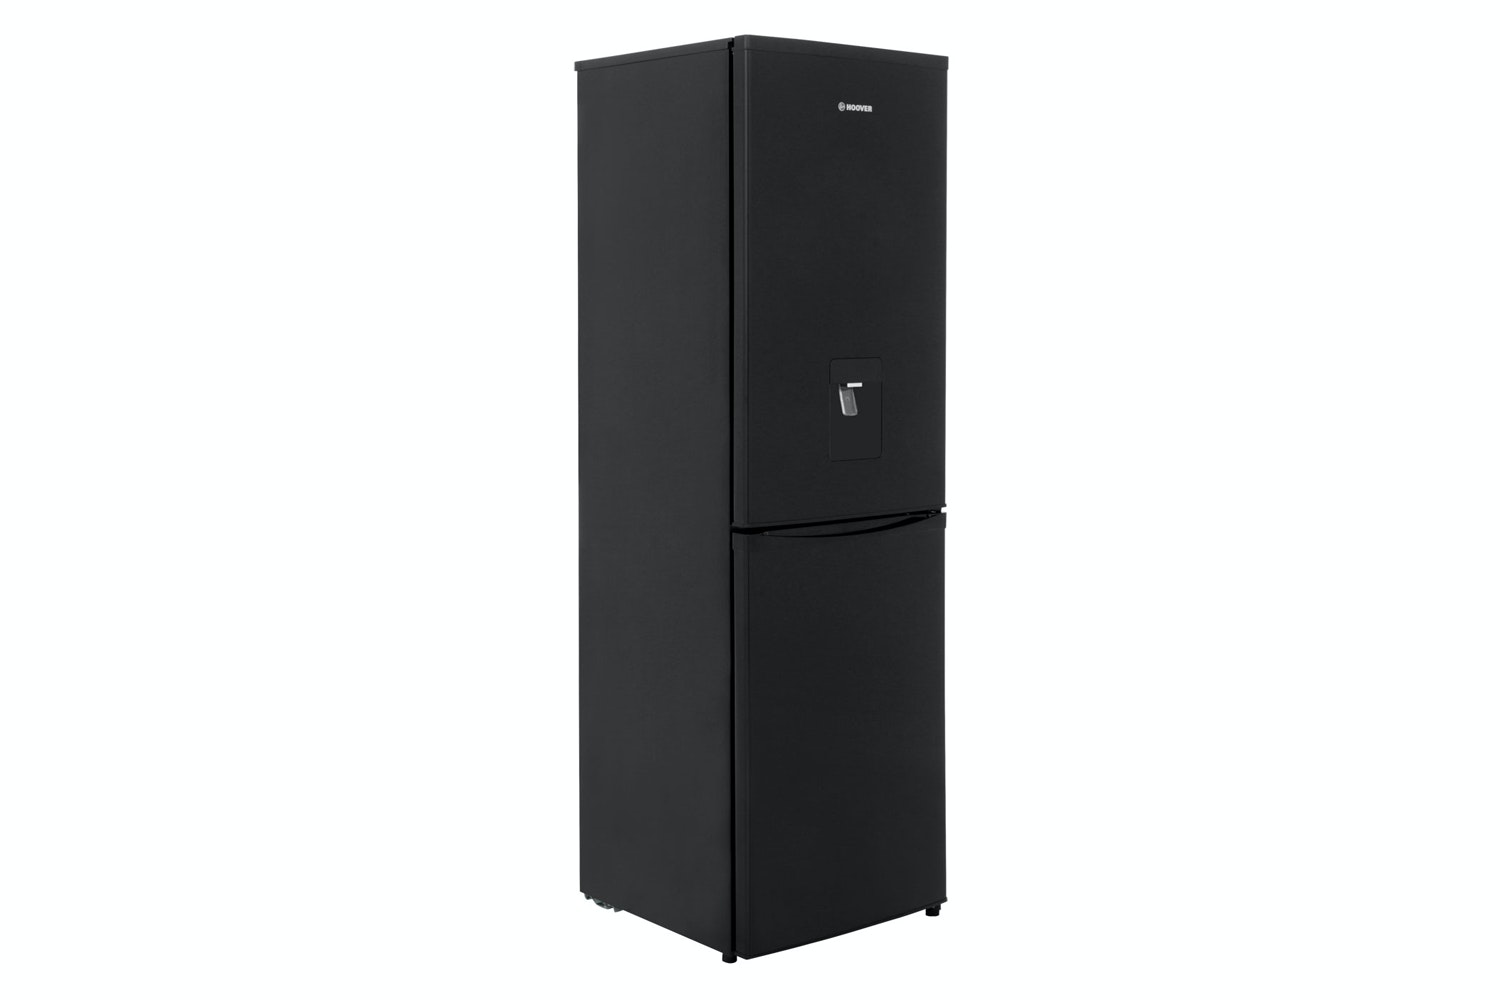 Hoover Fridge Freezer | HVBF 5182BWK